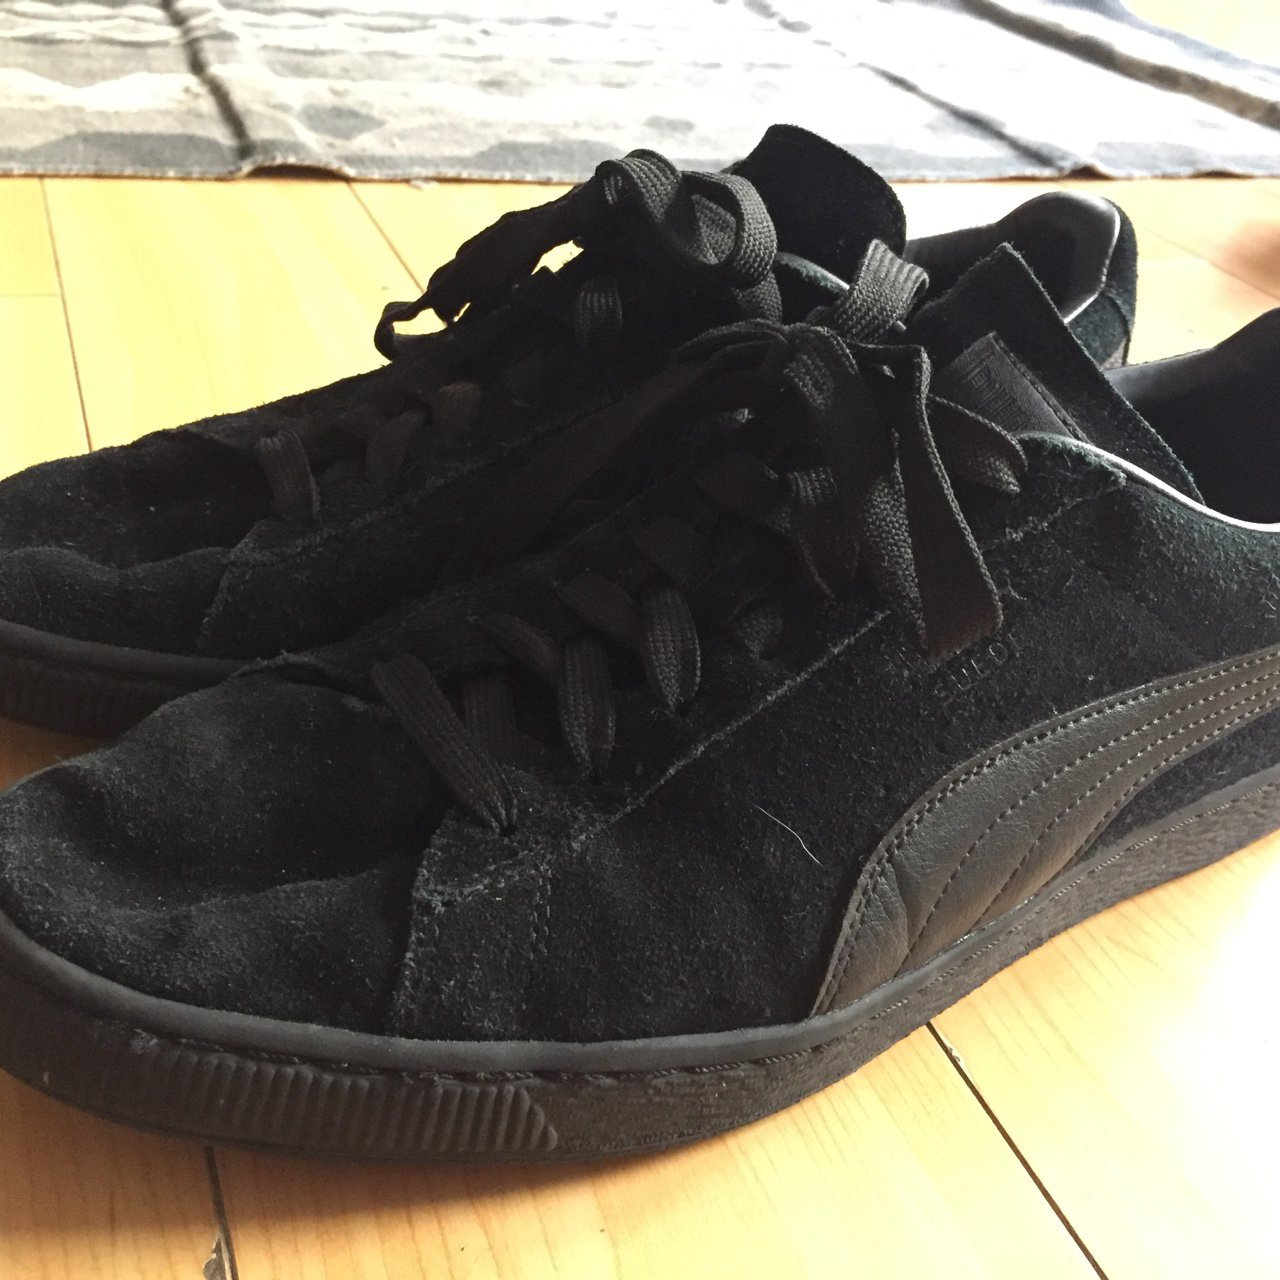 e6f8a1e463a @_jaded777. 2 years ago. Los Angeles, United States. *price drop!!* Free  shipping!! Black Puma Suede mens sneakers size 11